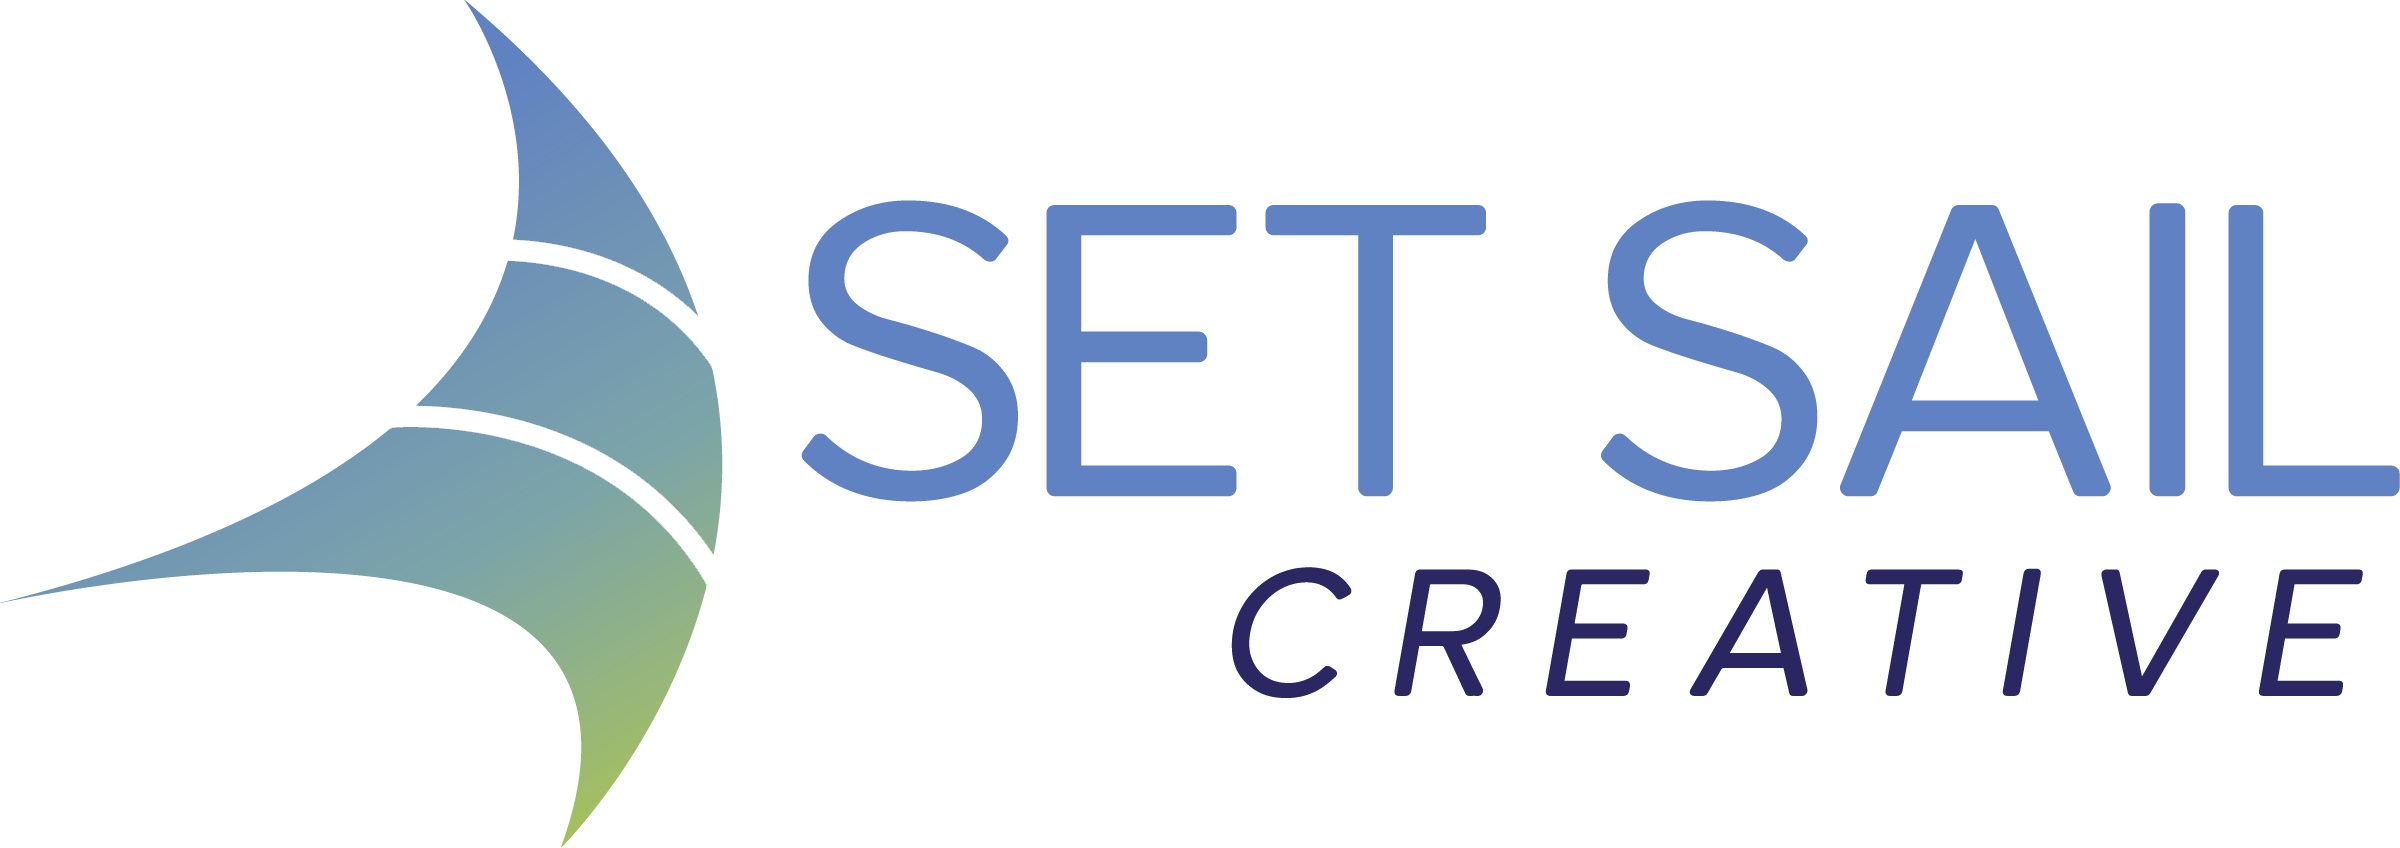 Set Sail Creative